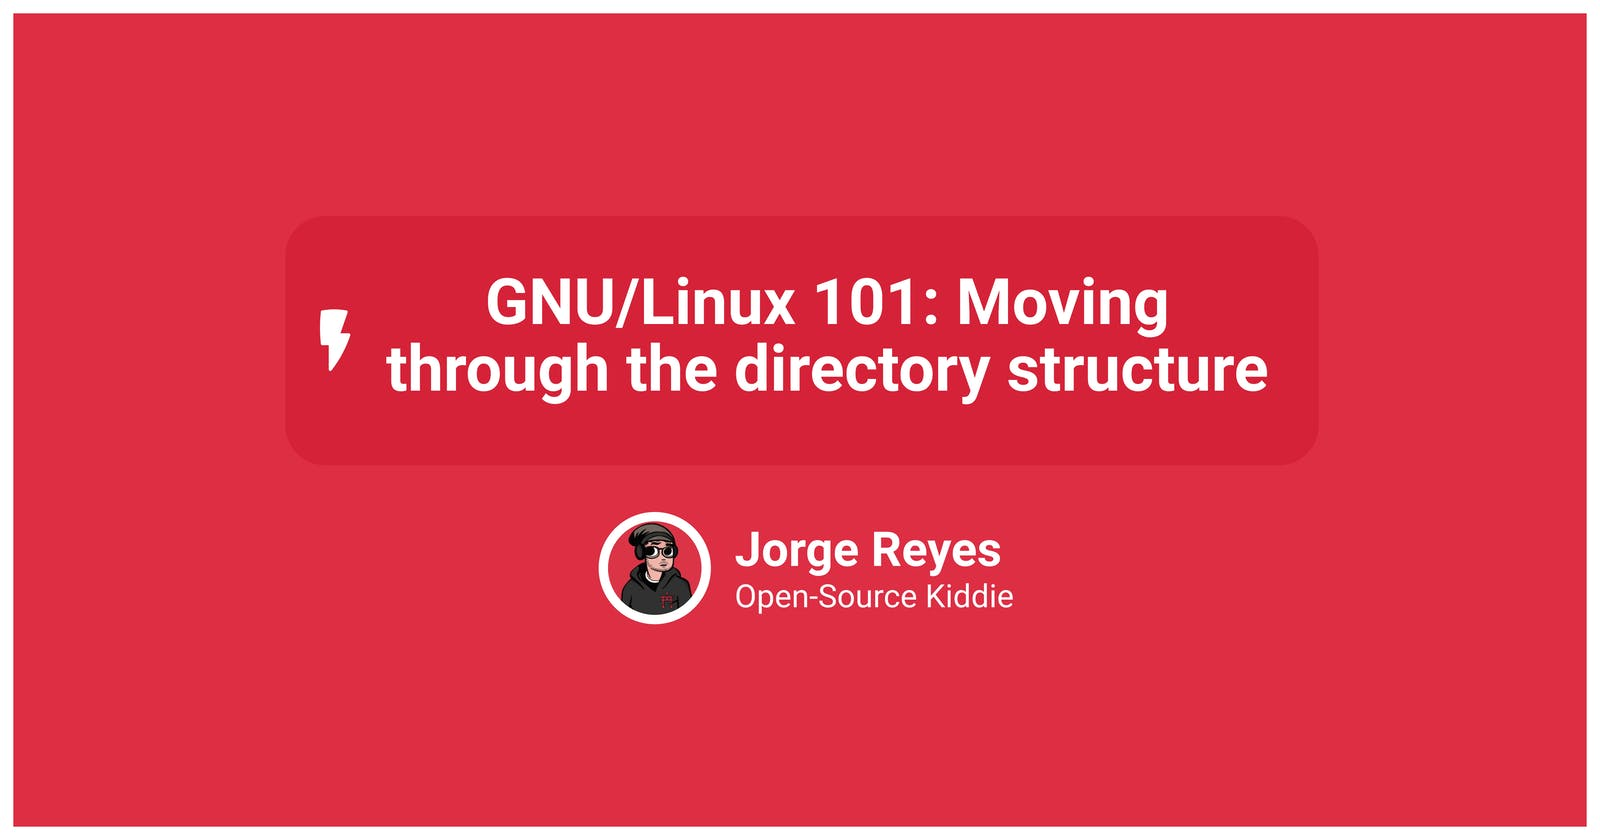 GNU/Linux 101: Moving through the directory structure